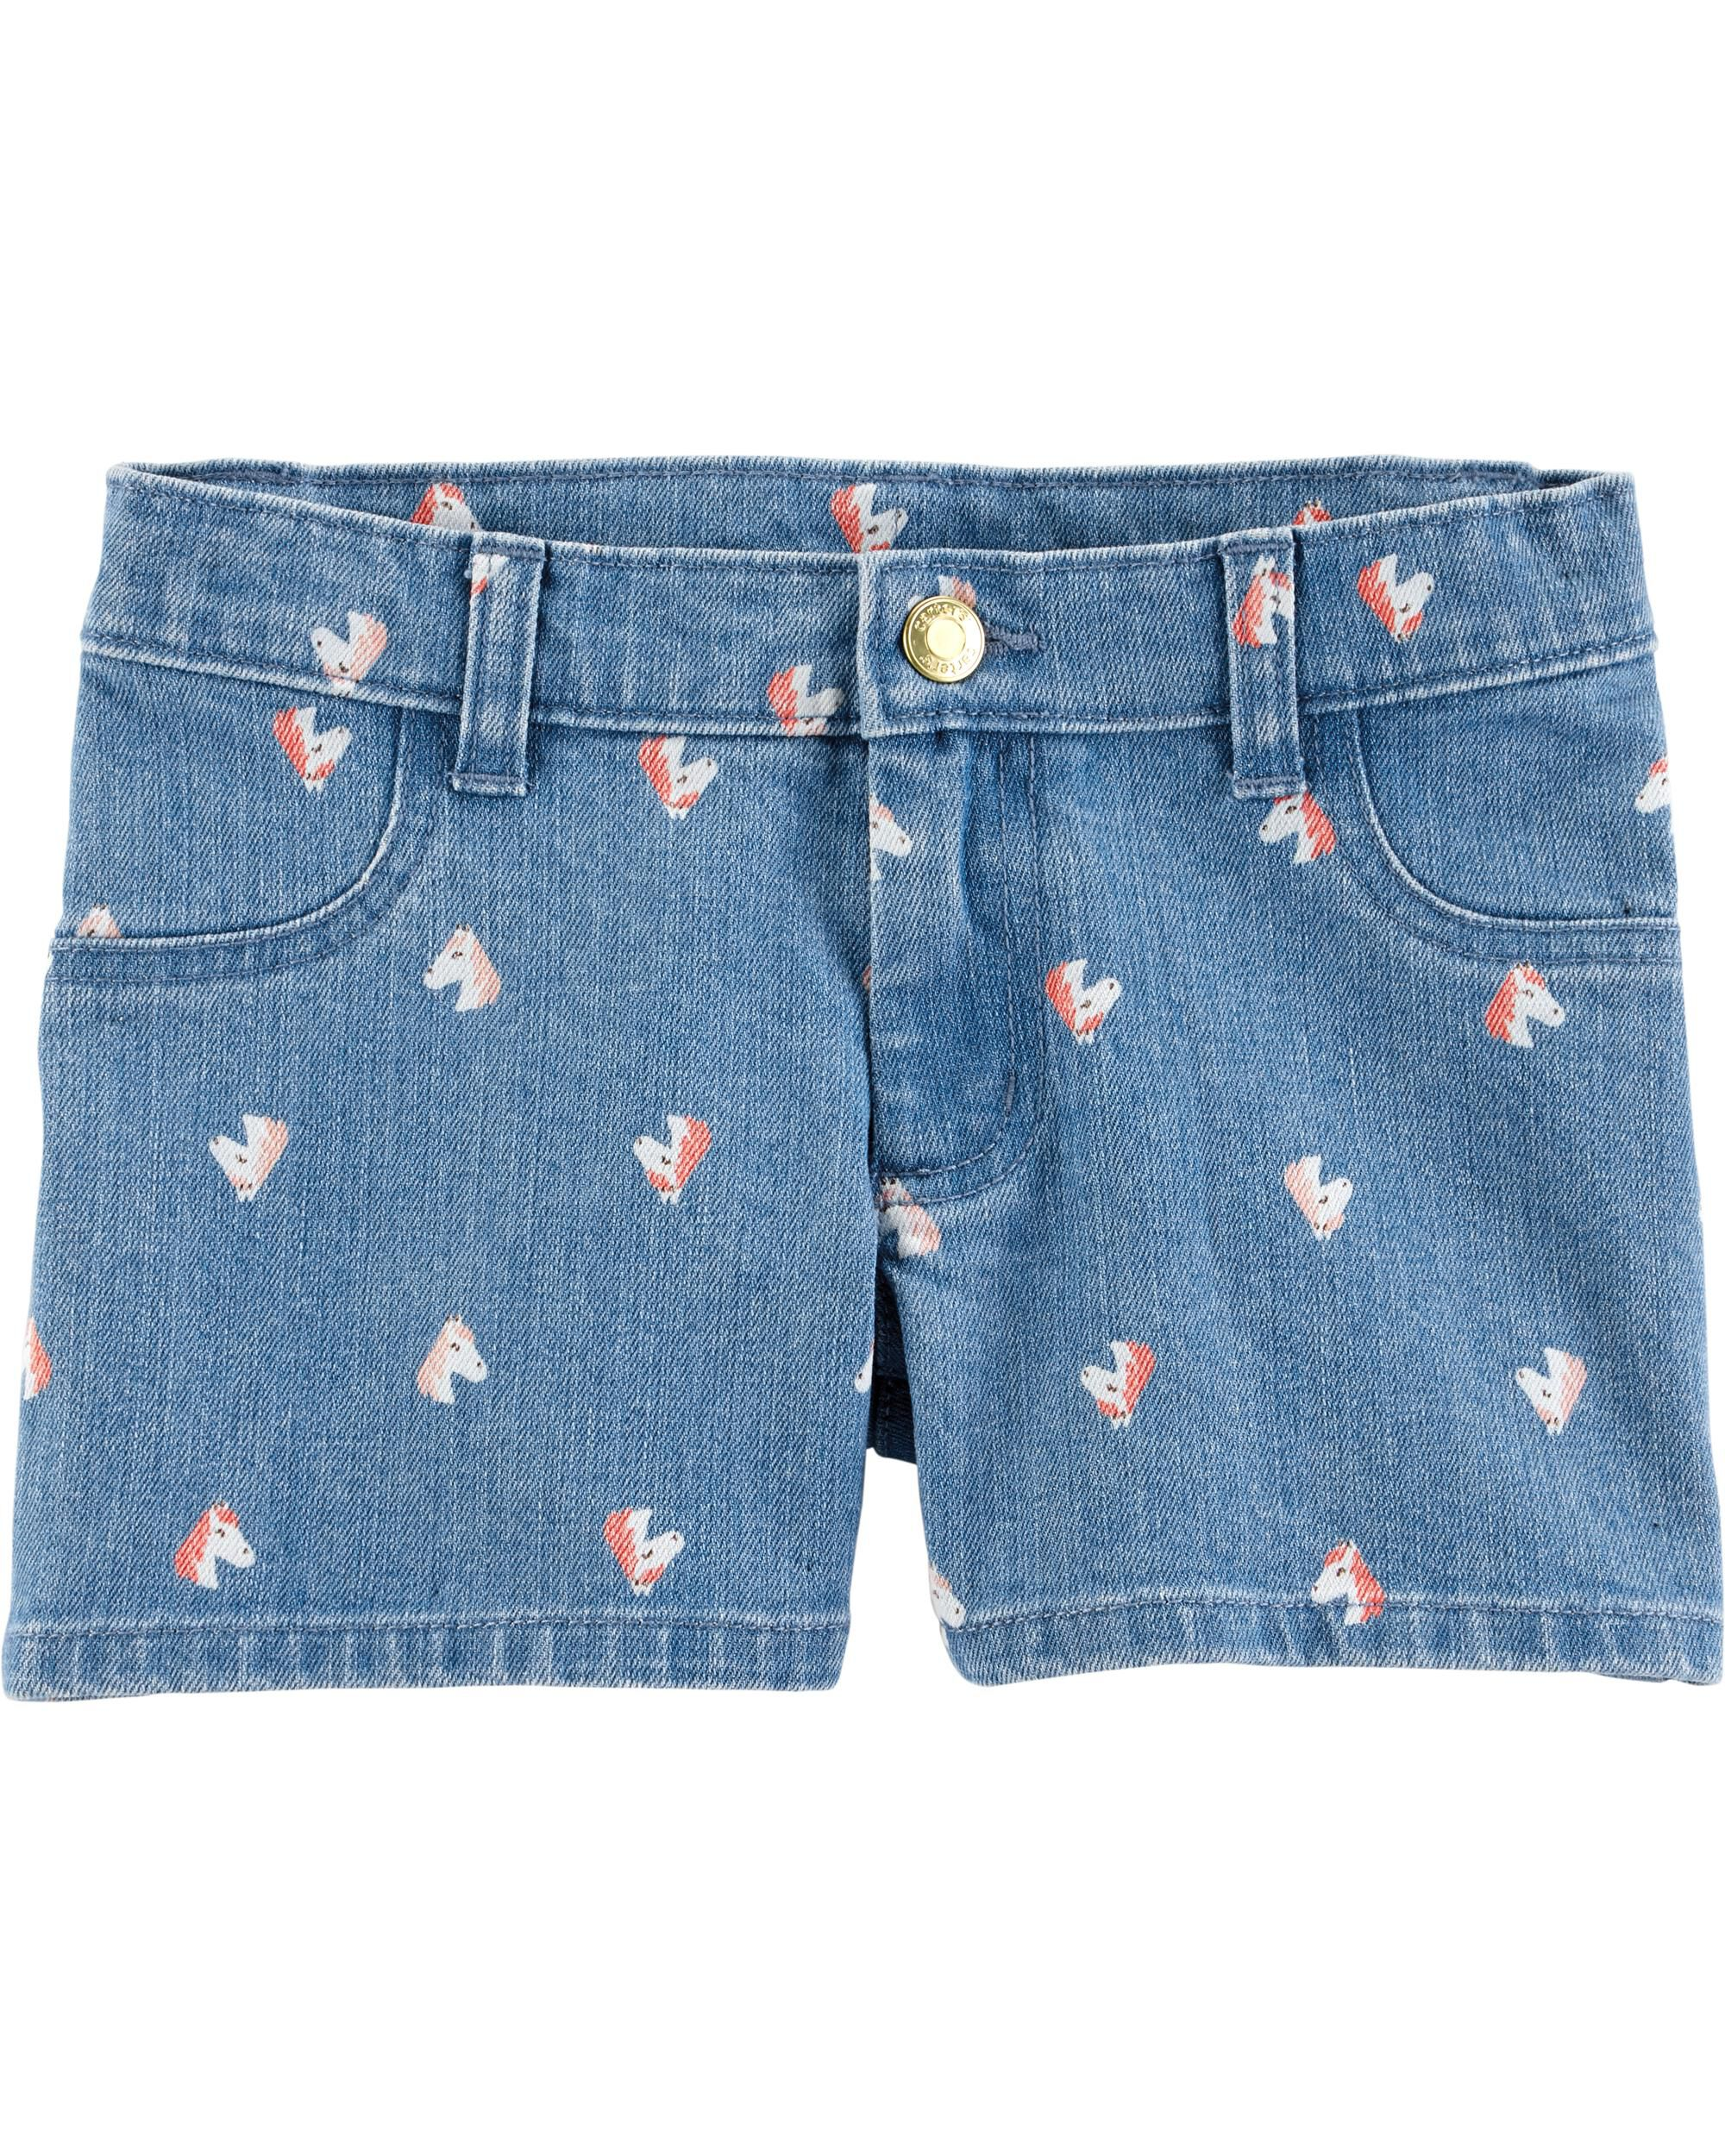 *Clearance*  Horse Denim Shorts